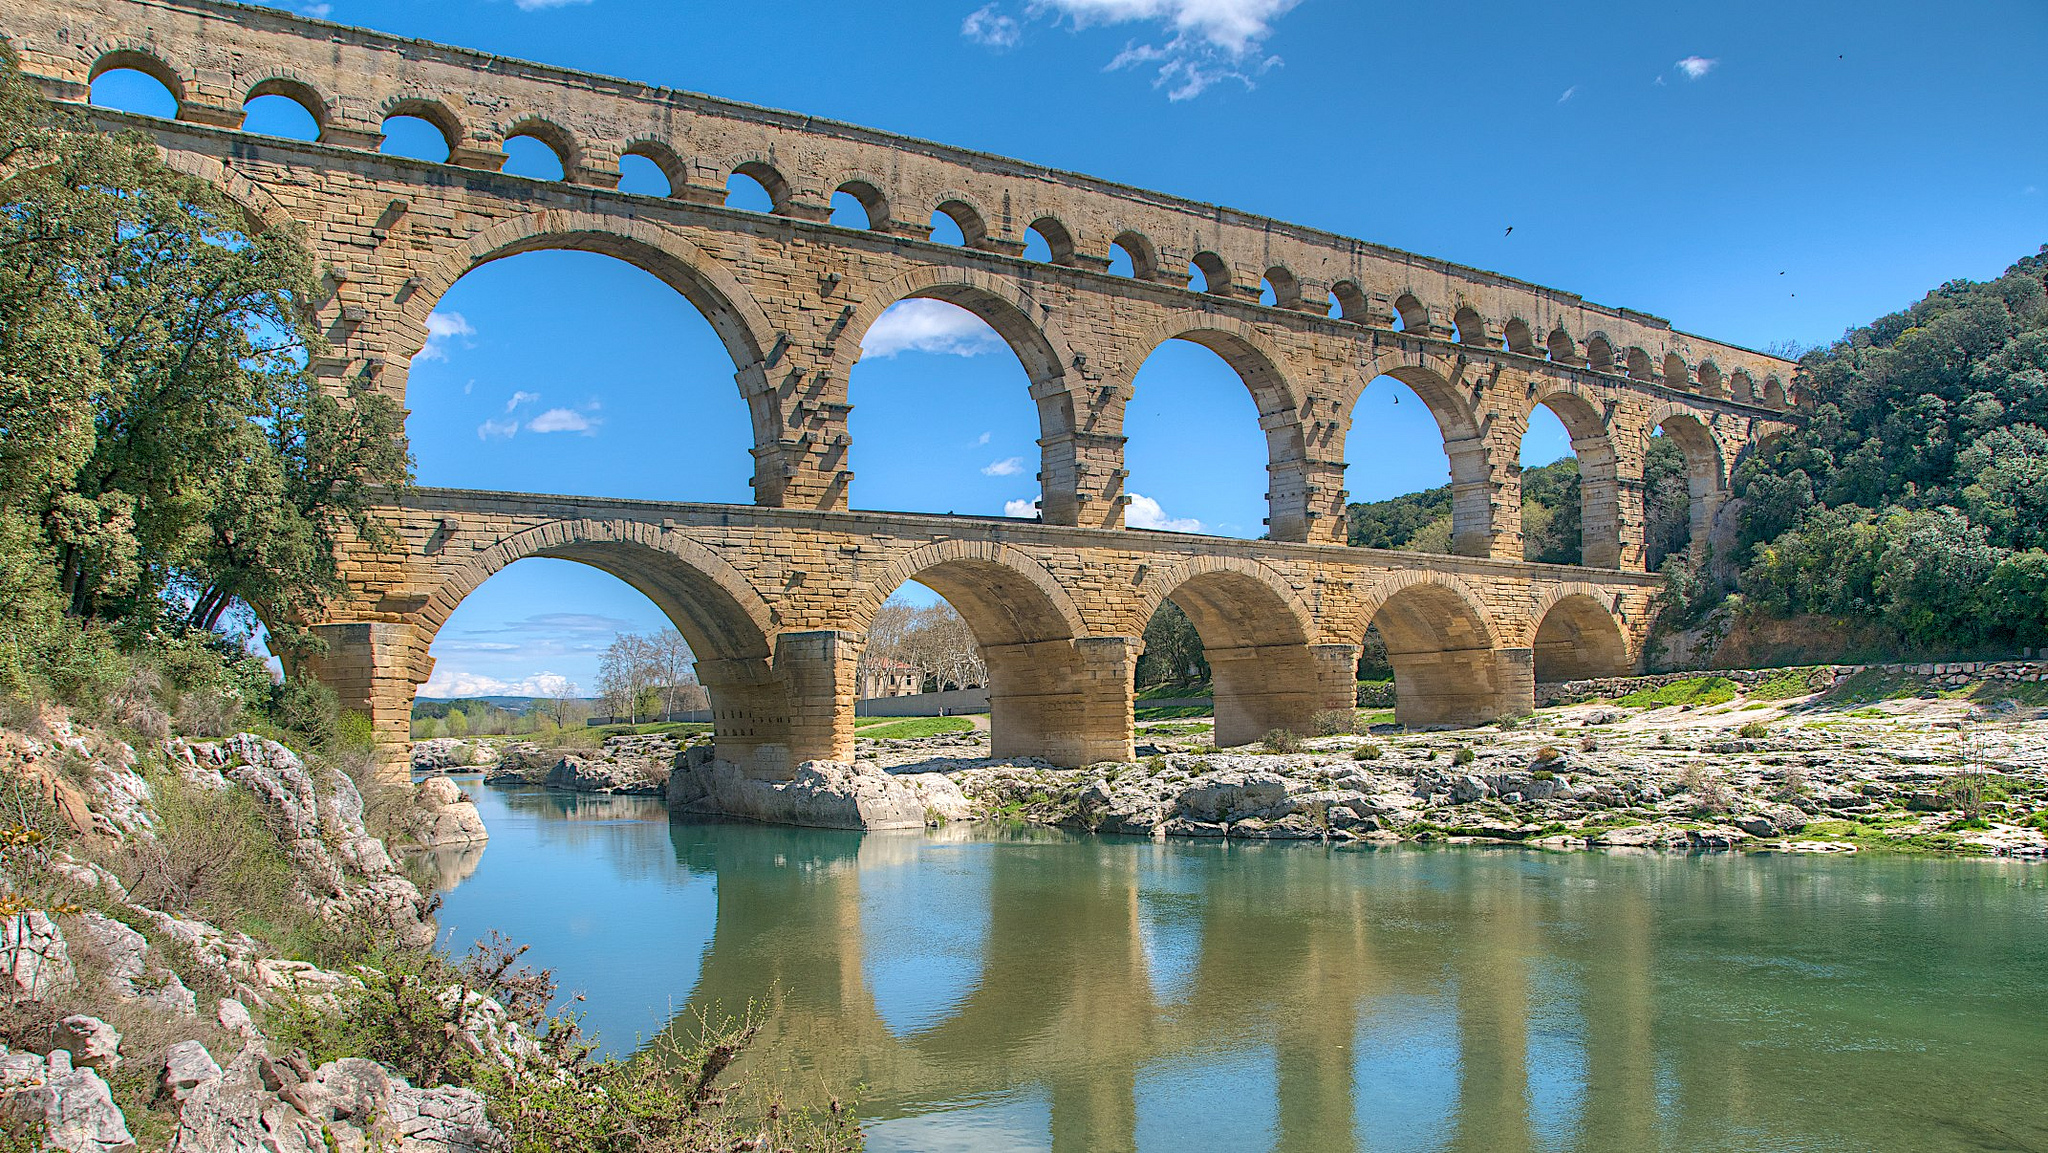 pont du gard bridge in france thousand wonders. Black Bedroom Furniture Sets. Home Design Ideas